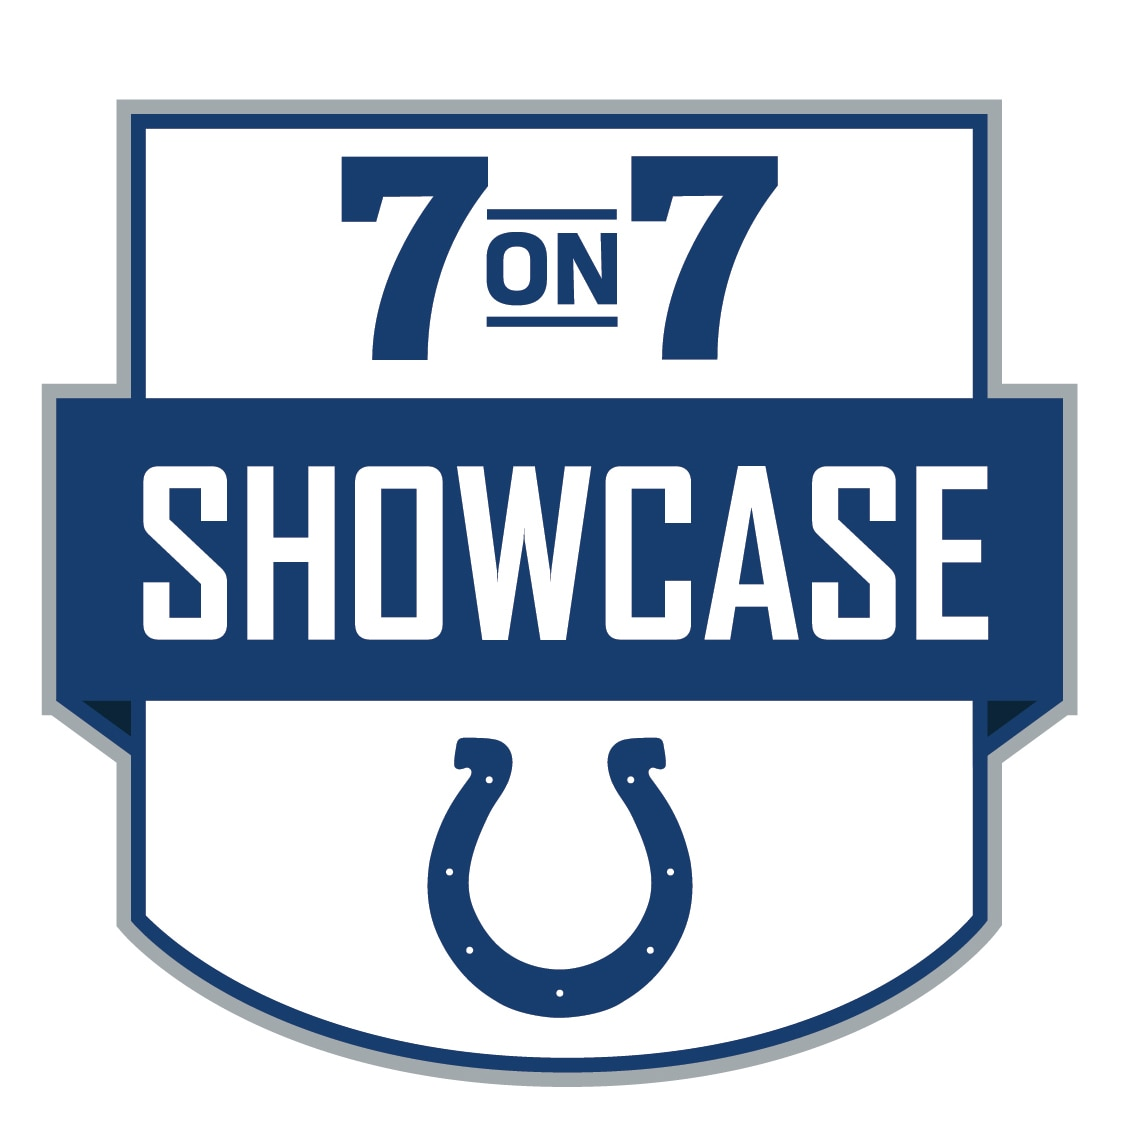 7on7 Showcase